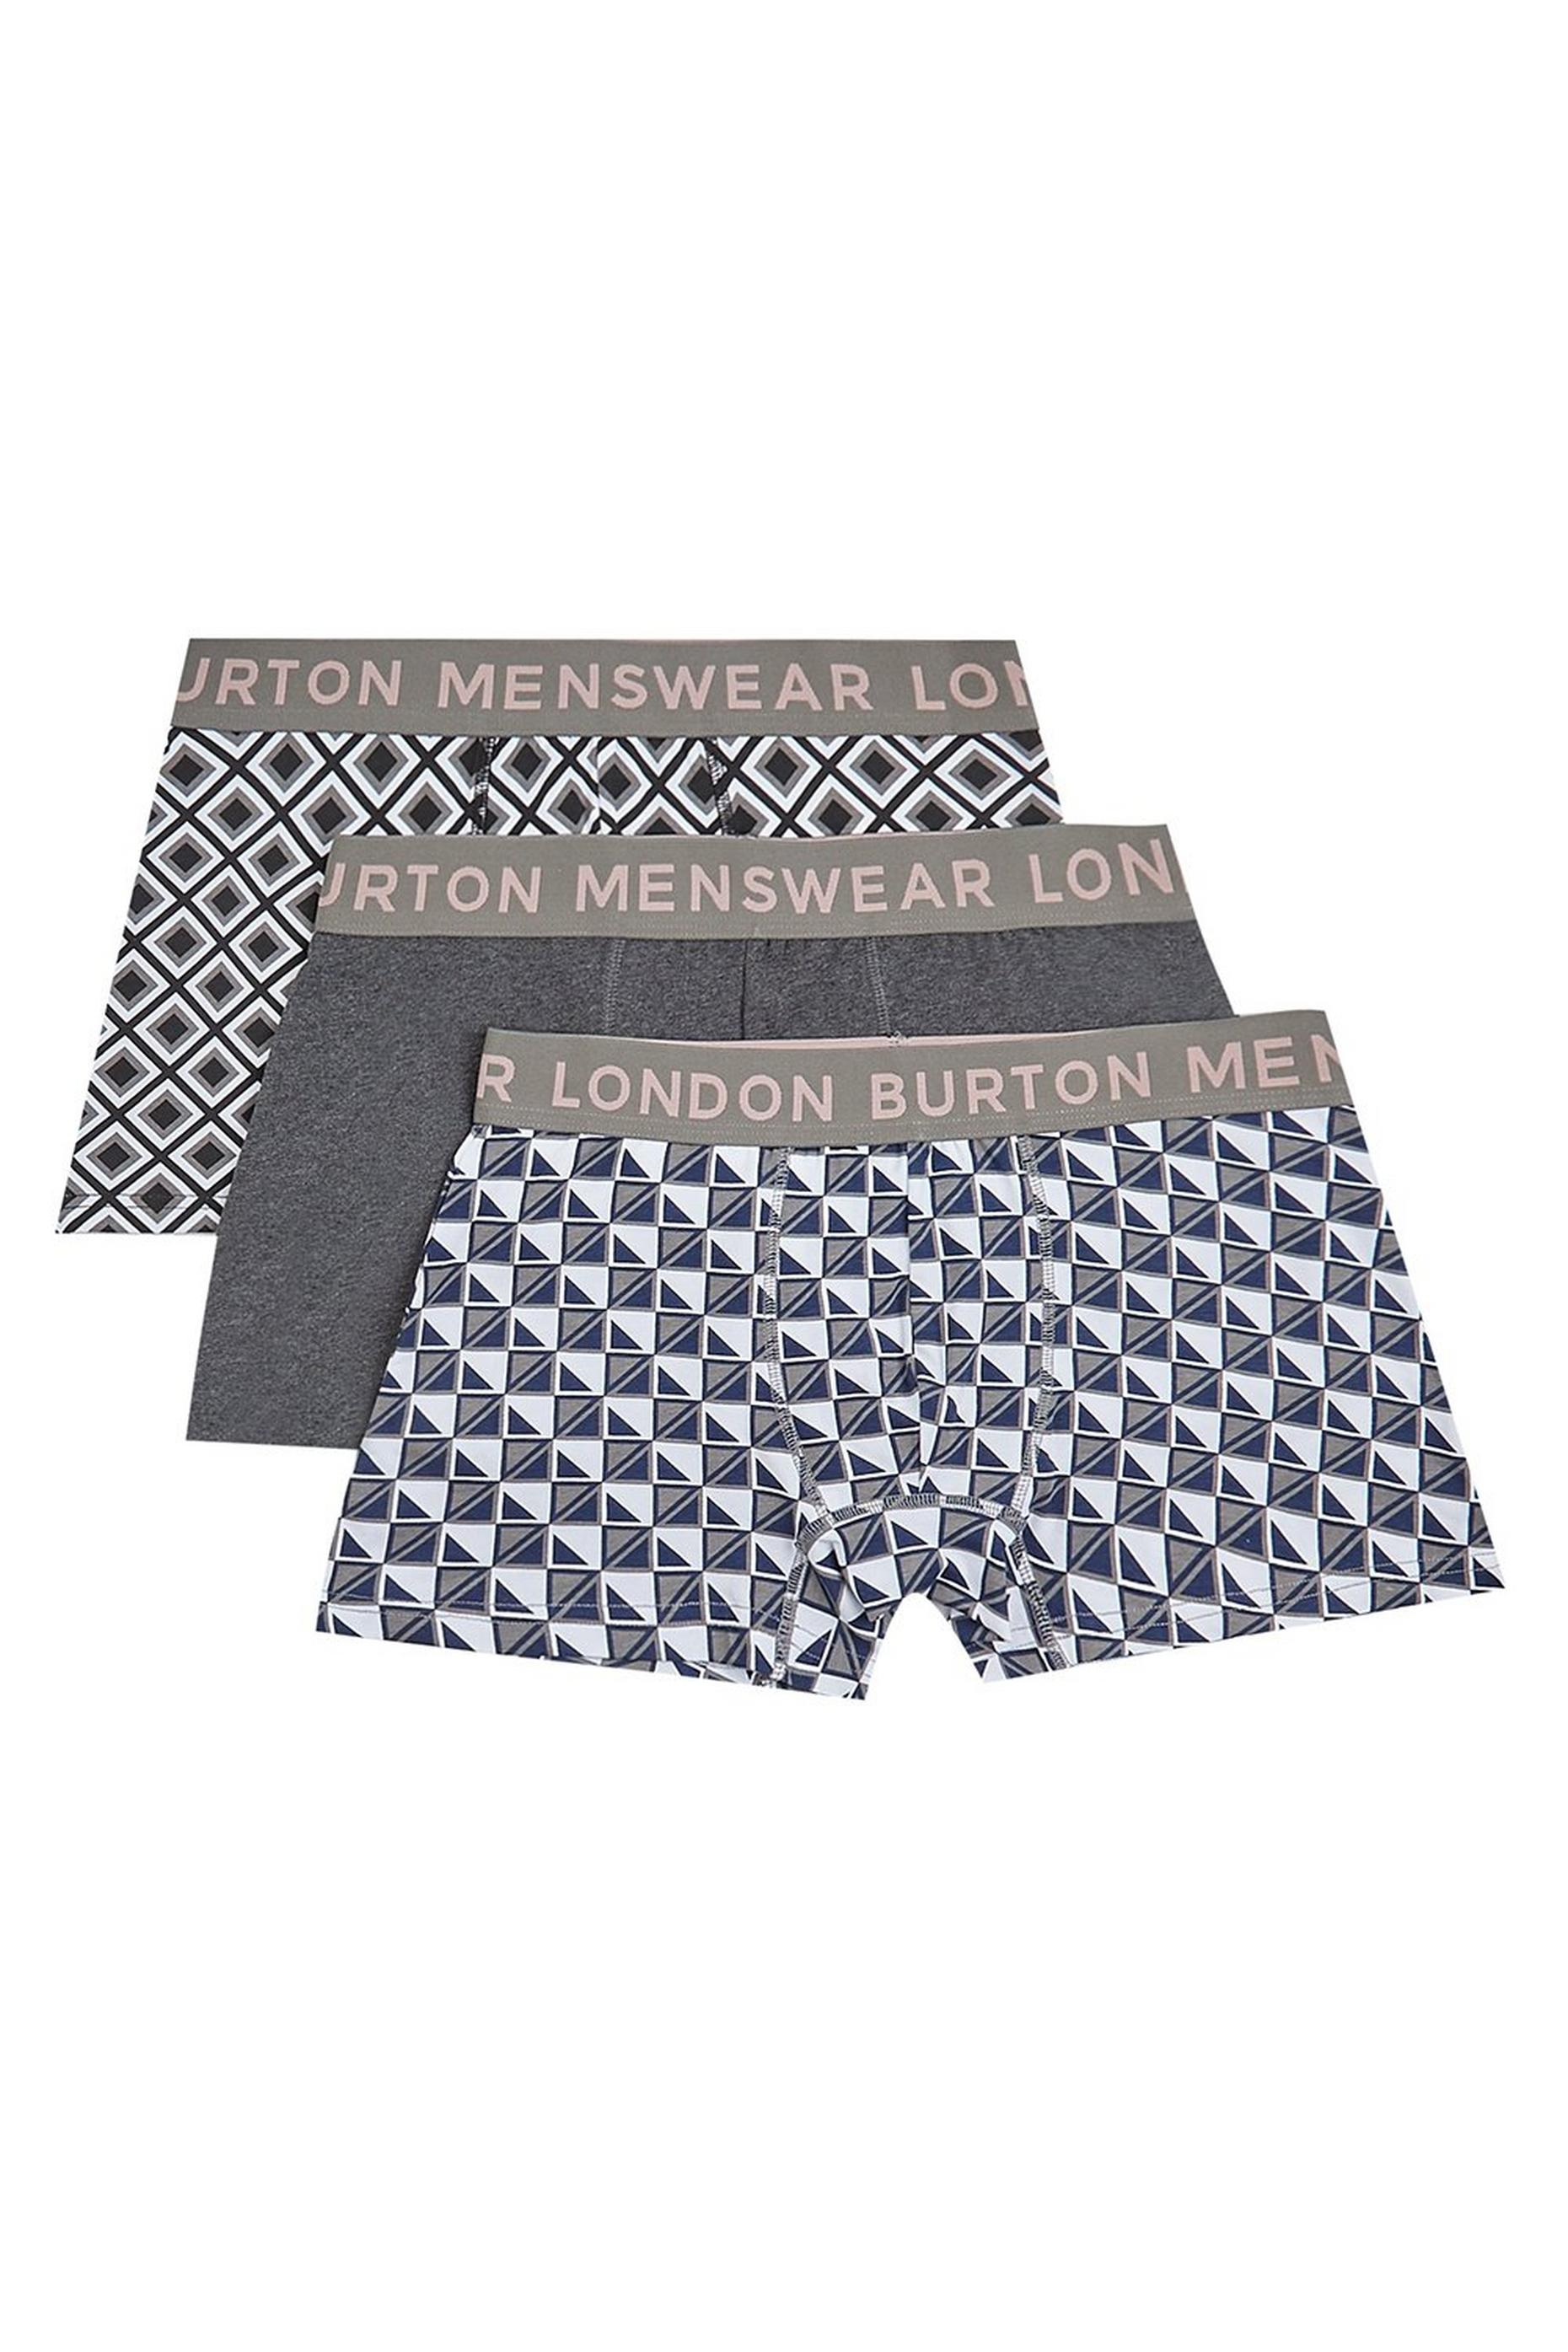 3 Pack Monochrome Geometric Print Trunks